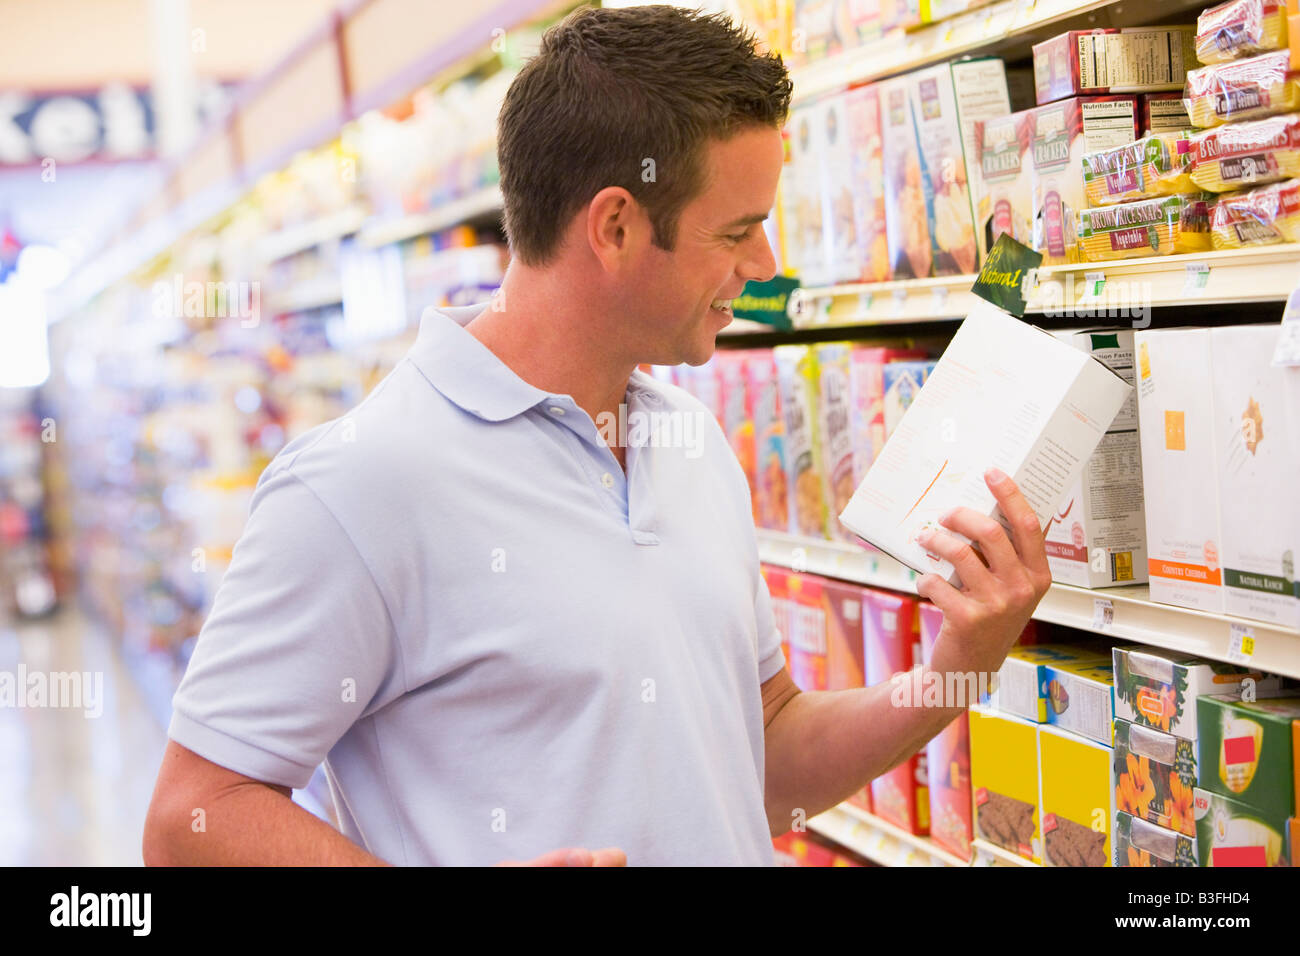 Man shopping at grocery store - Stock Image